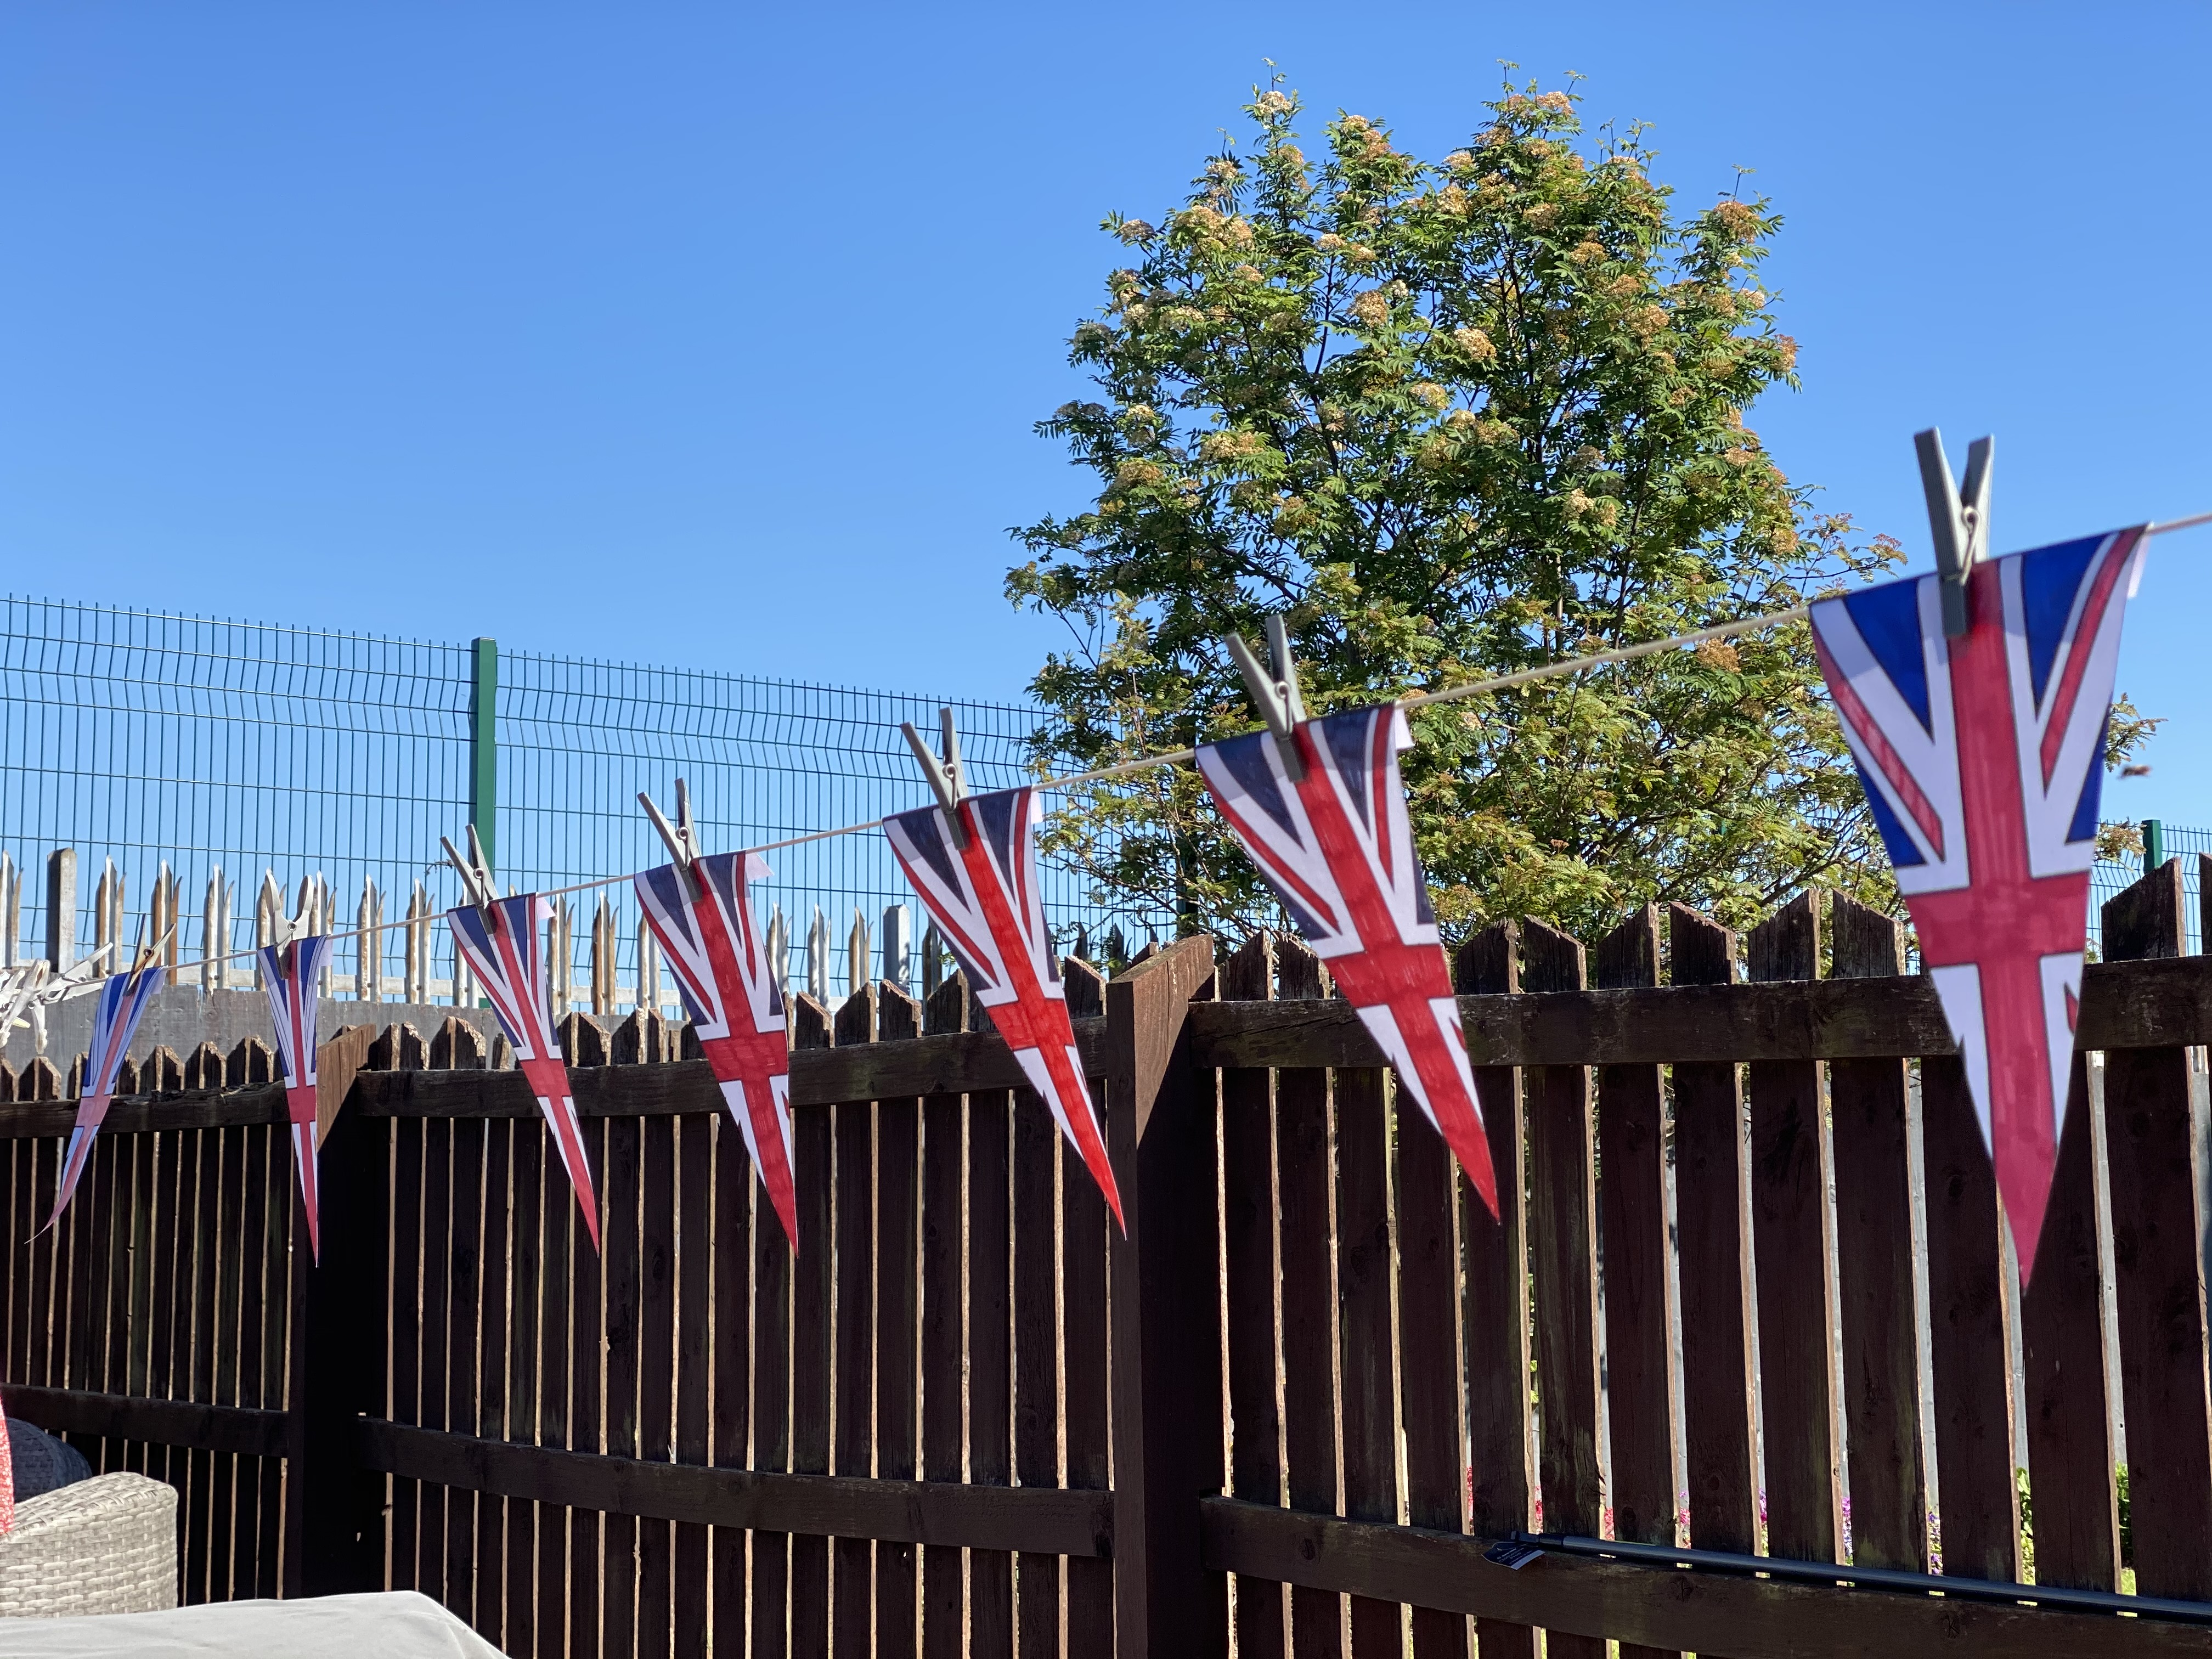 VE day flags